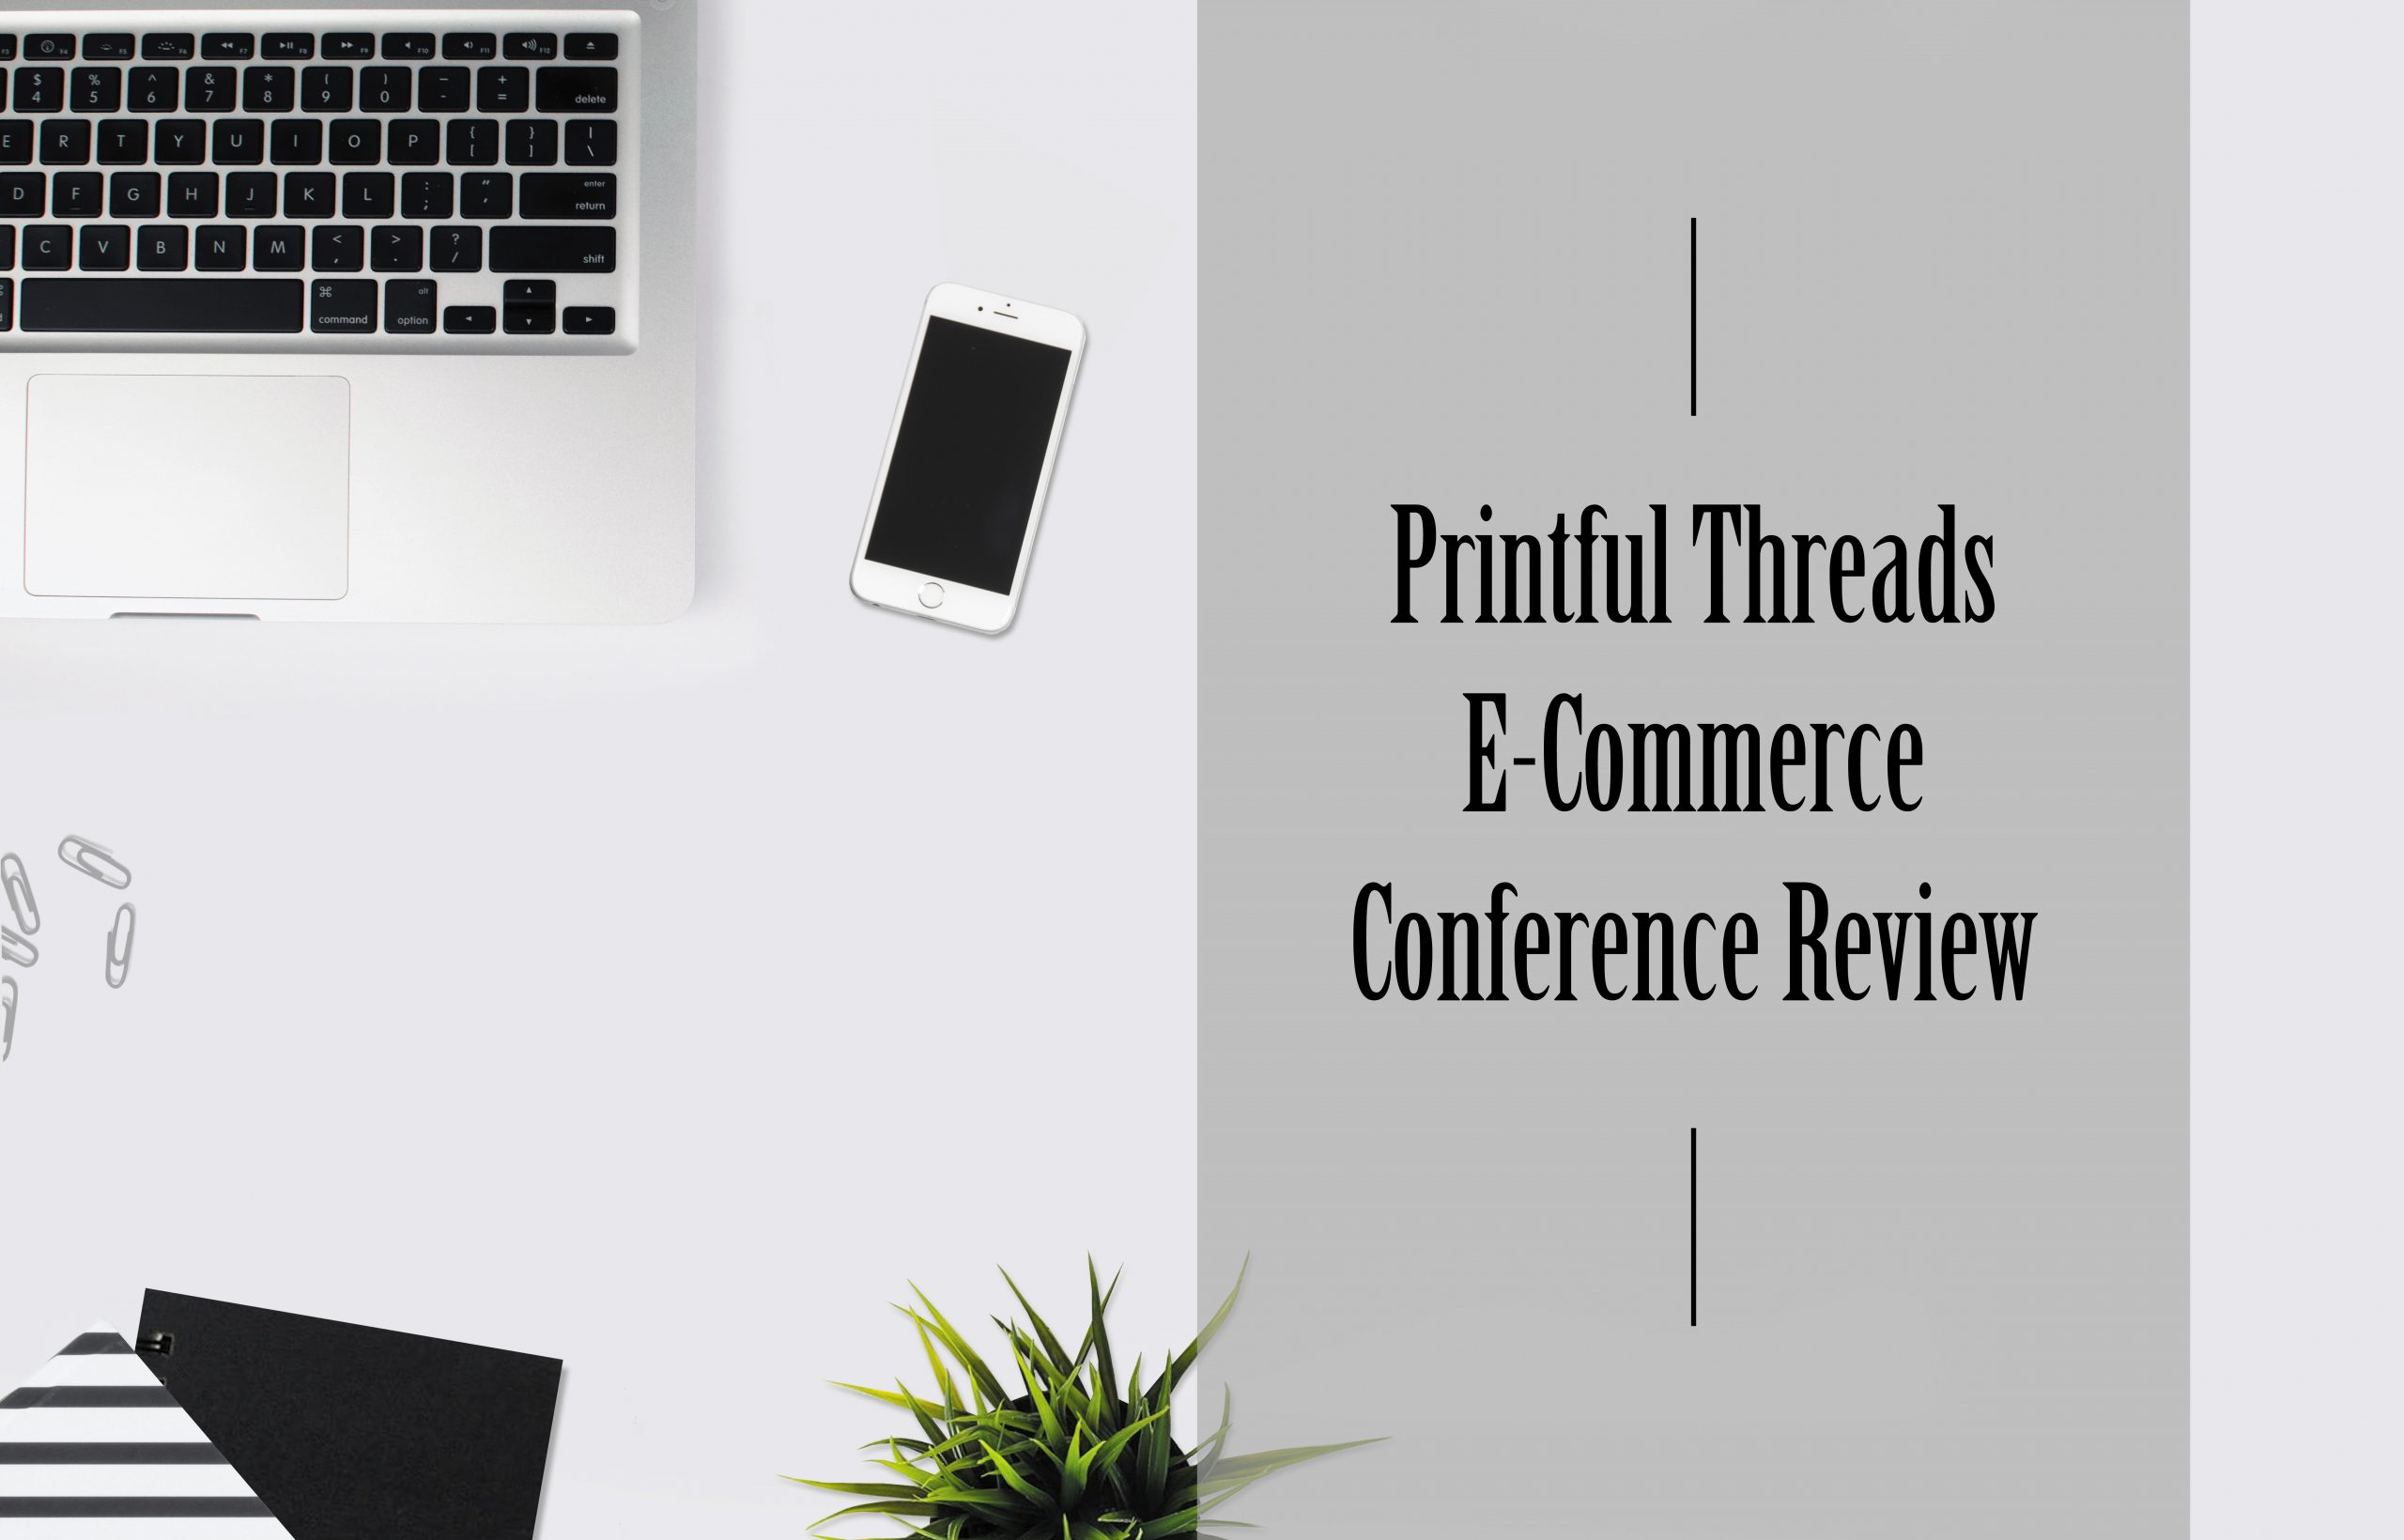 Printful Threads E-Commerce Conference Review